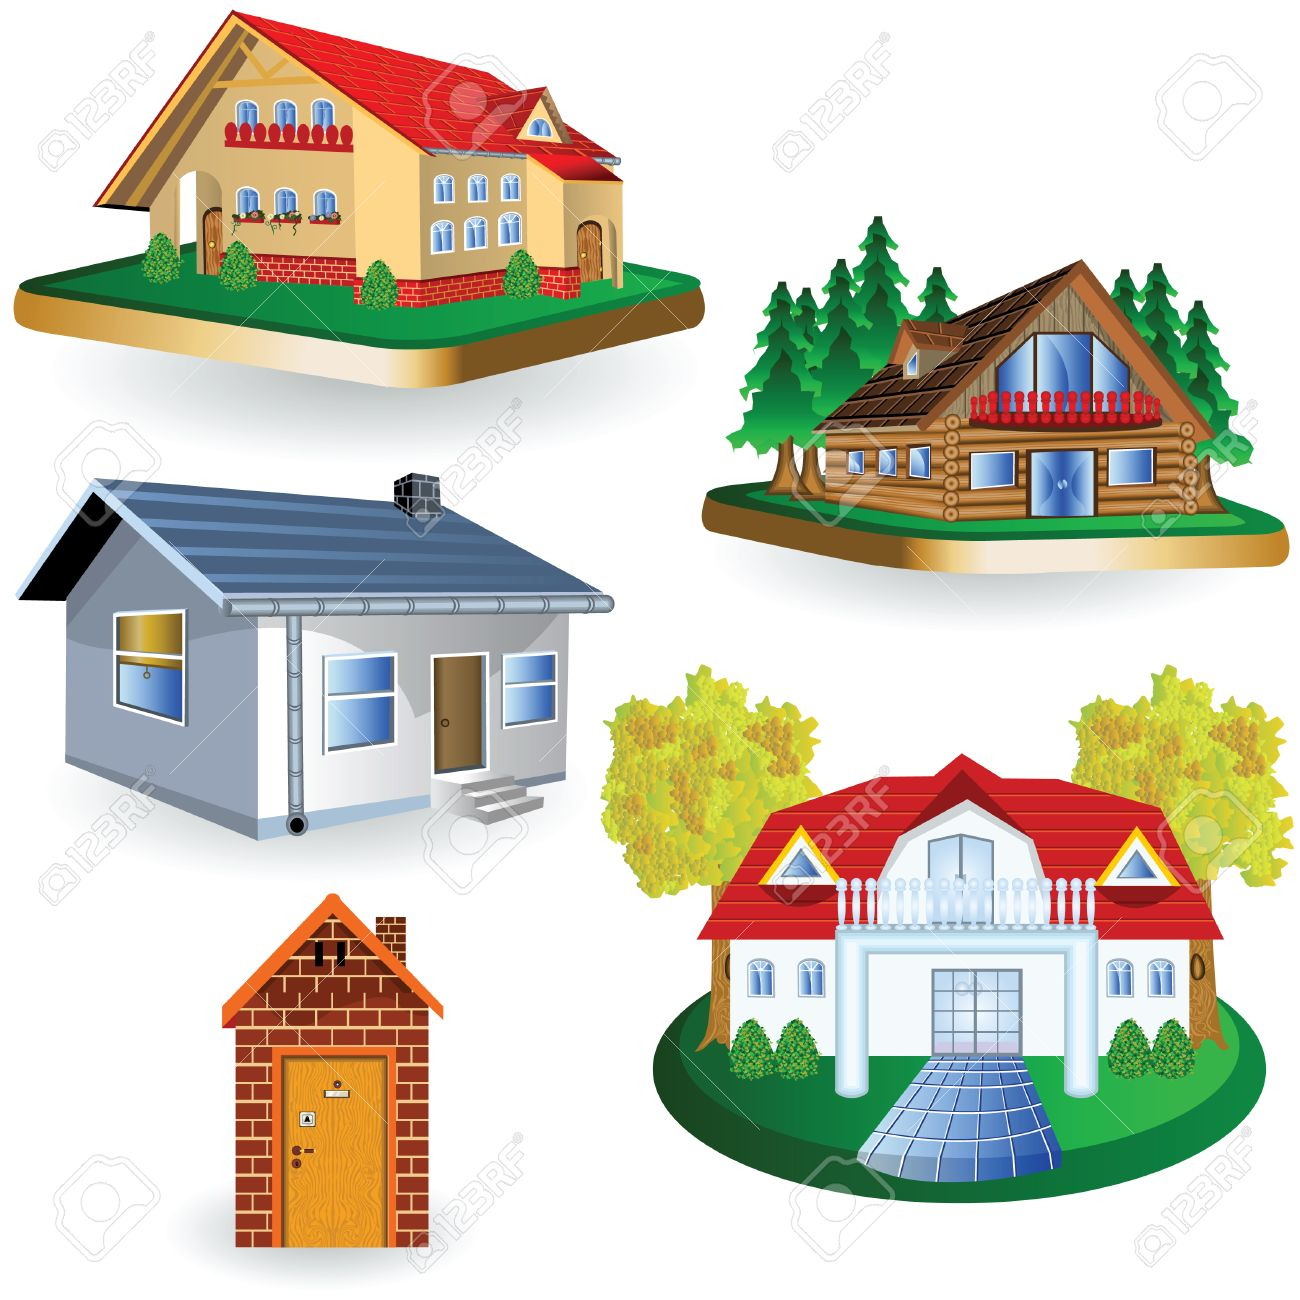 Remarkable A Collection Of Four Different House Illustrations Royalty Free Largest Home Design Picture Inspirations Pitcheantrous